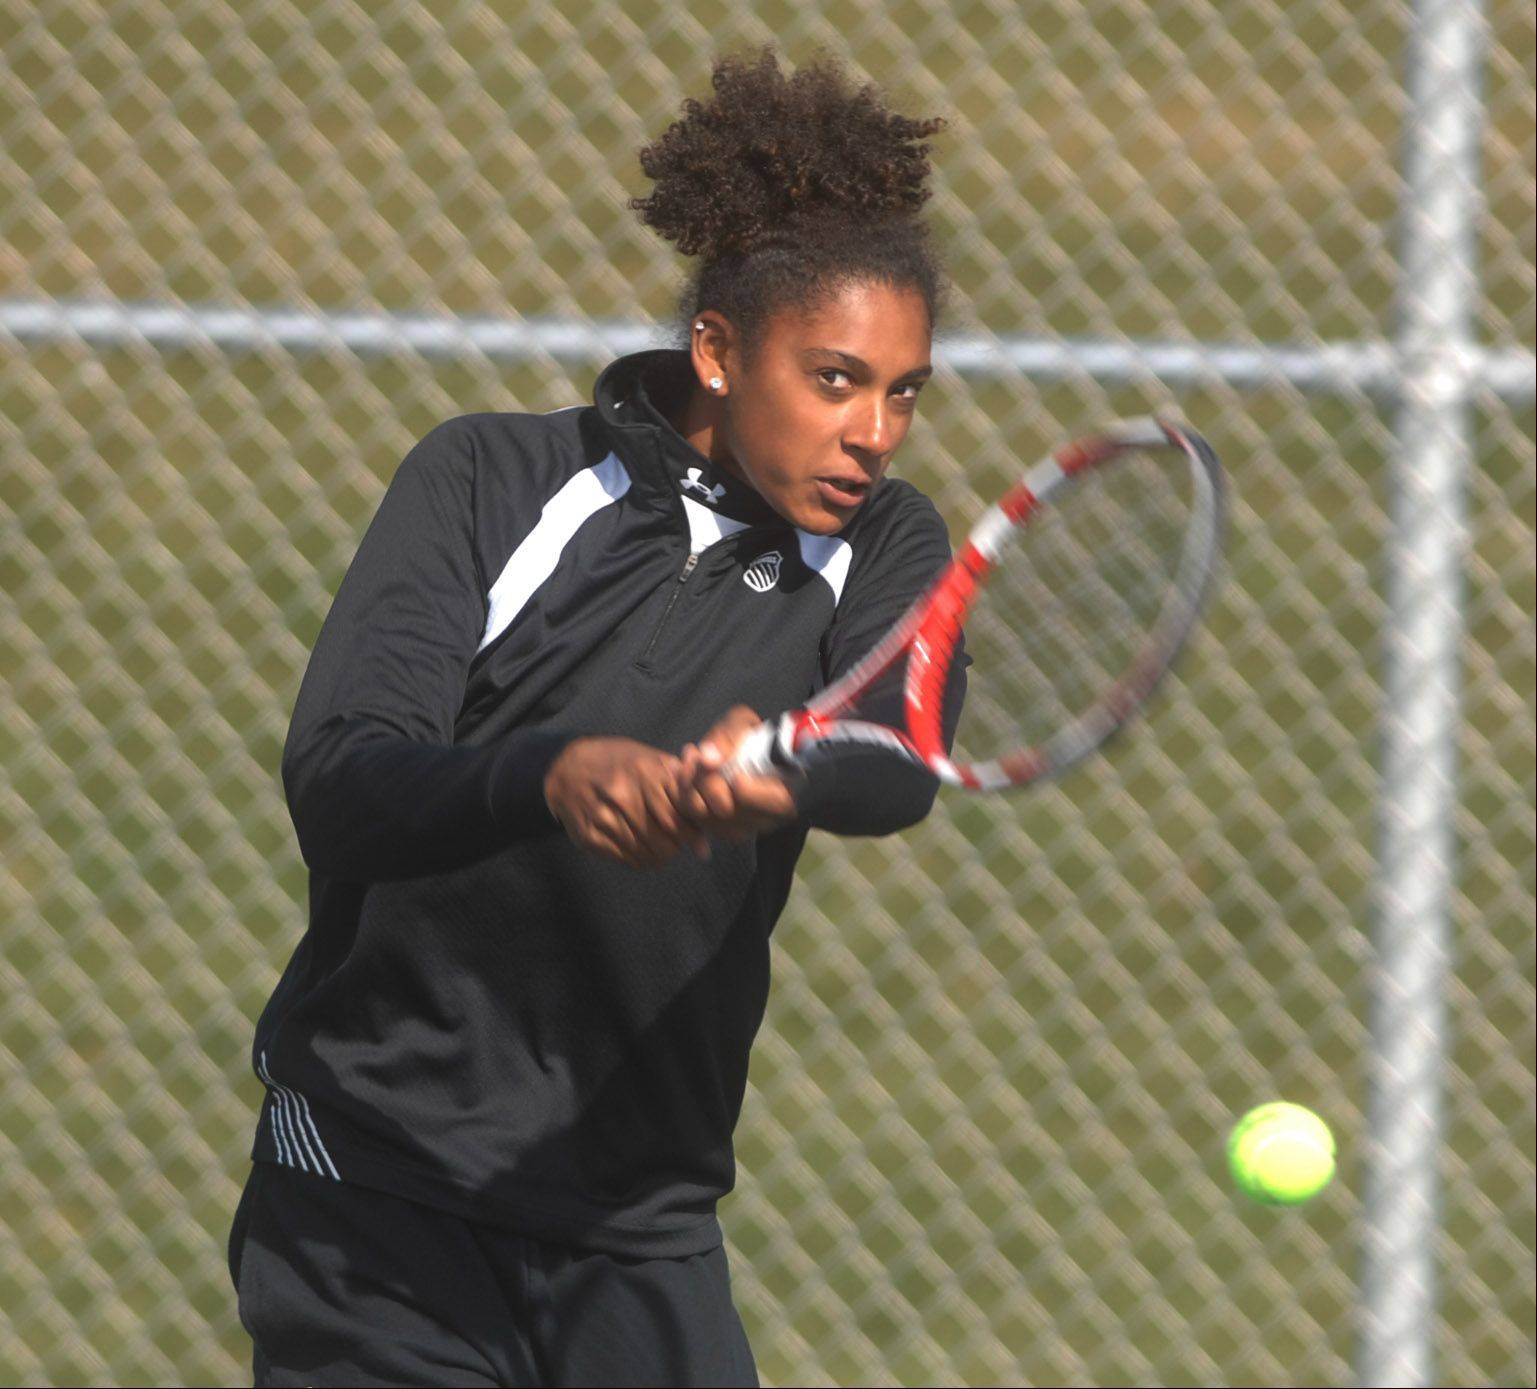 Keisha Clousing of Wheaton Warrenville South plays Tiffany Chen of Naperville (she is not pictured) during the DuPage Valley Conference girls tennis at Naperville North Saturday.